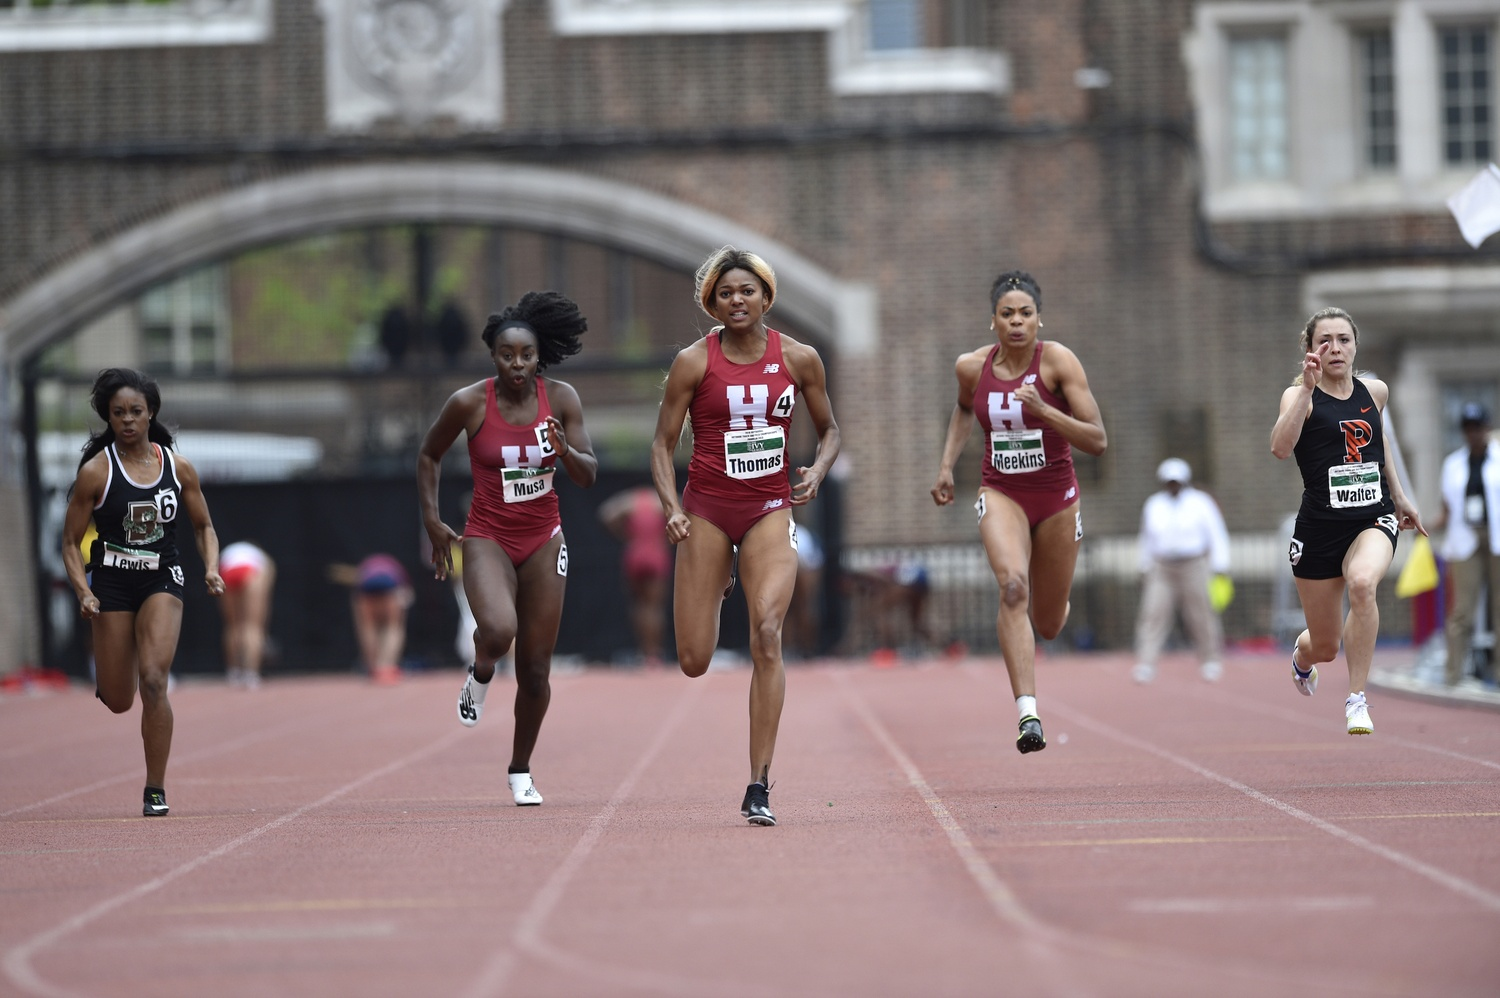 With a two-medal performance in Tokyo, Gabby Thomas '19, pictured above during her Harvard tenure, headlines the class of 15 current and former Crimson student-athletes competing at the Games.